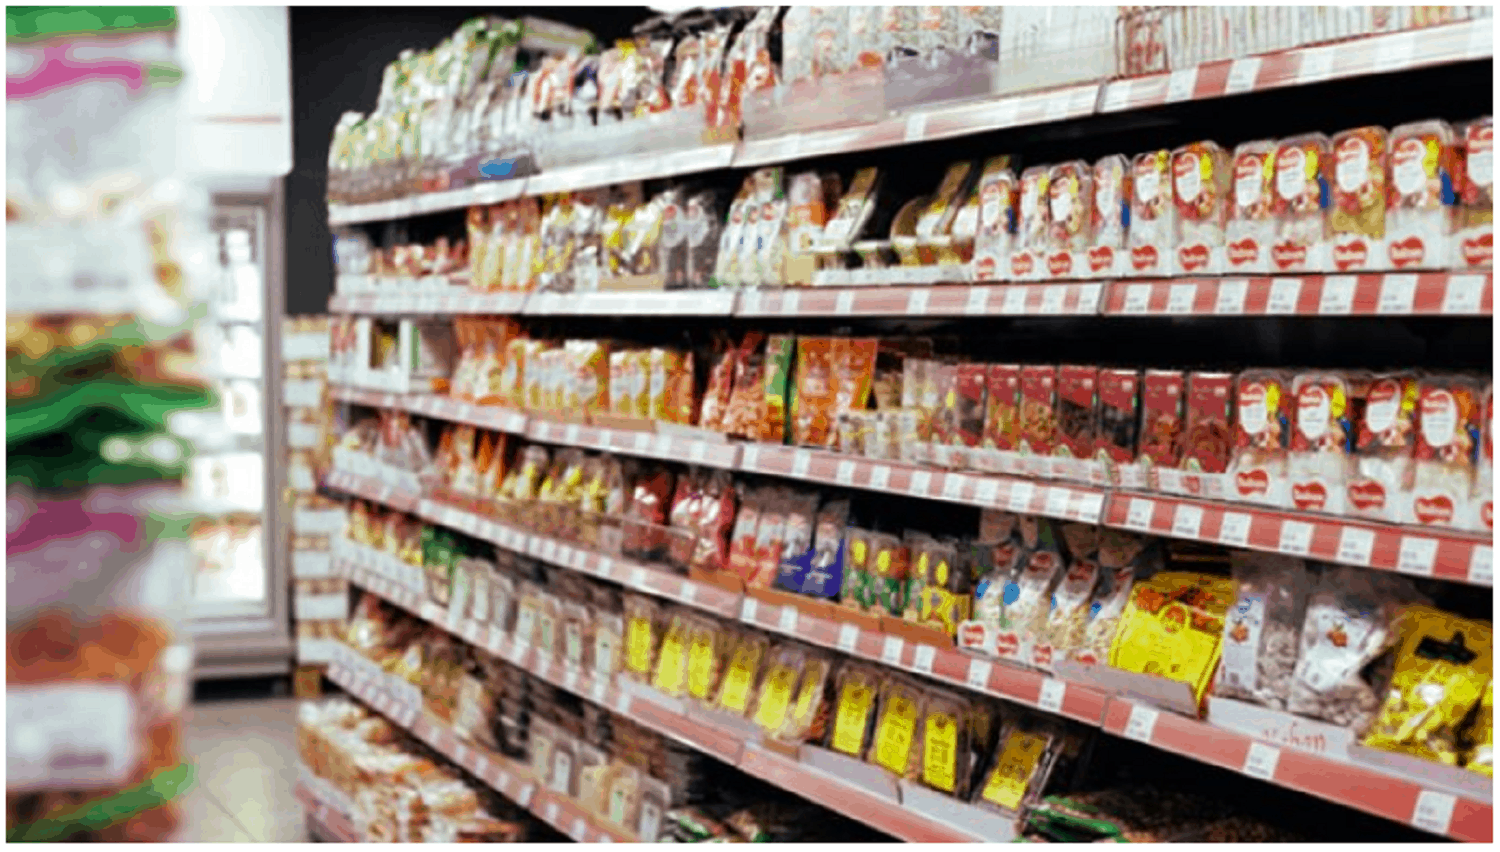 packaging materials for food contain